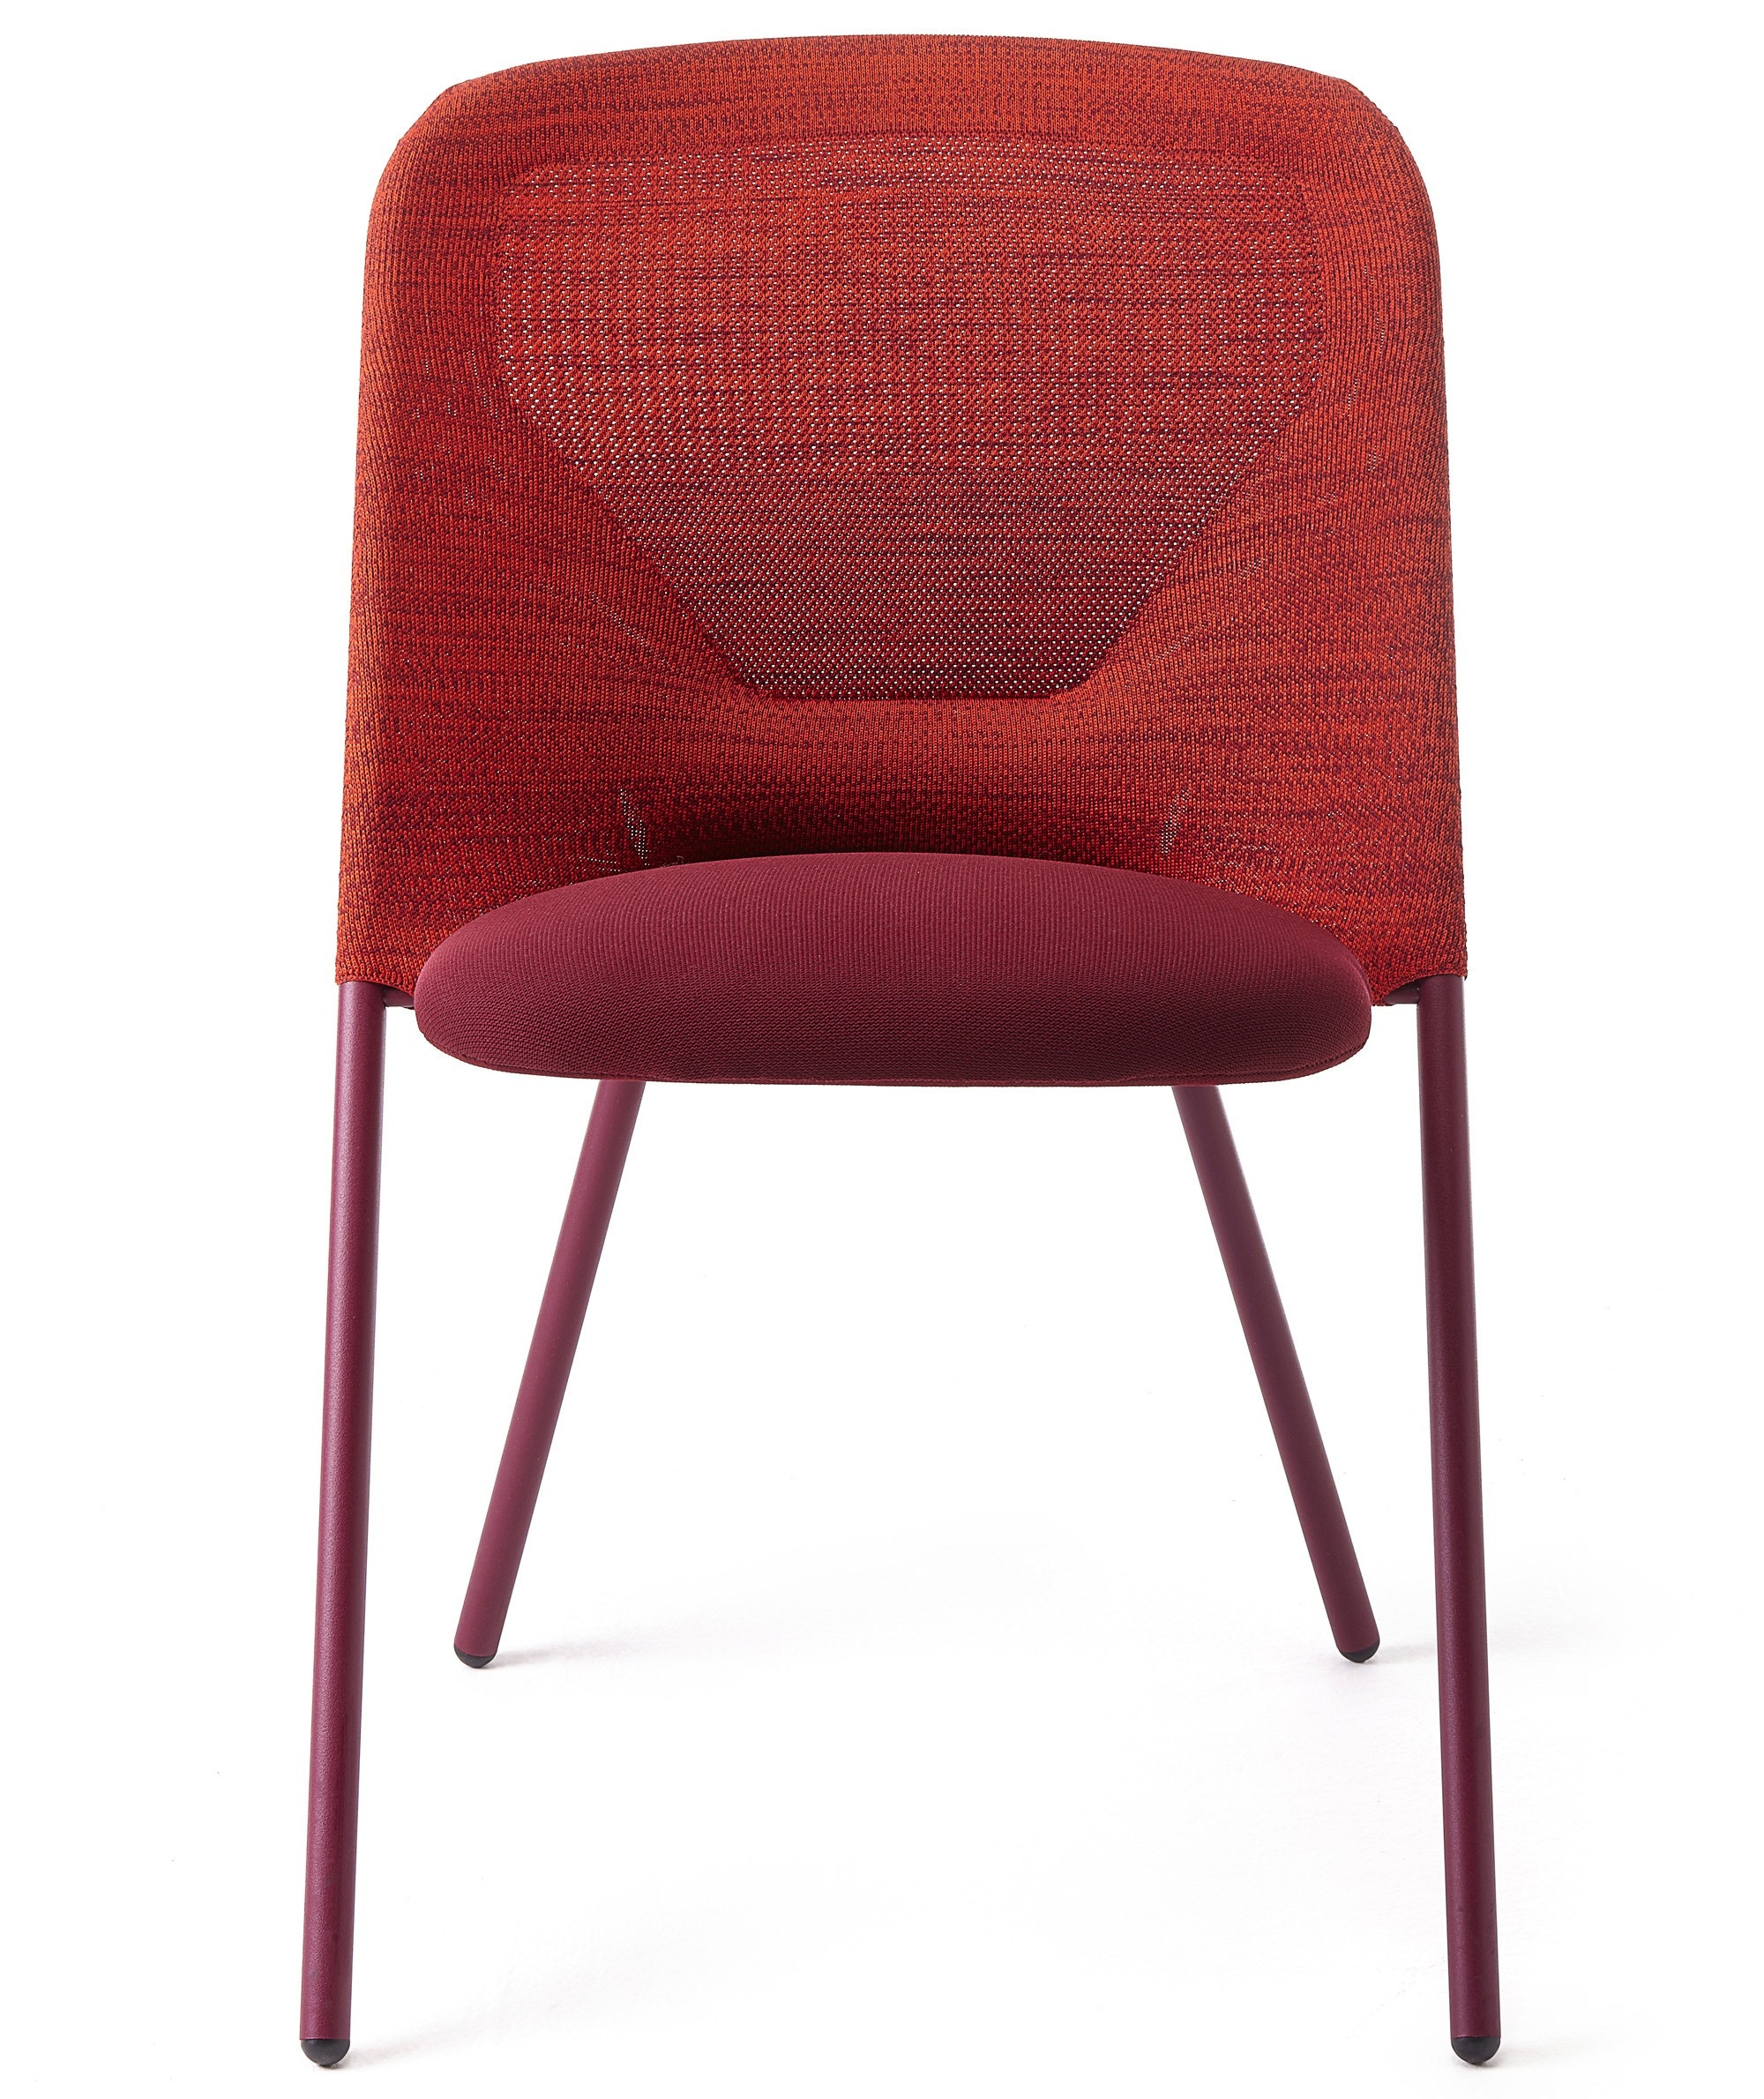 moooi shift foldable dining chair